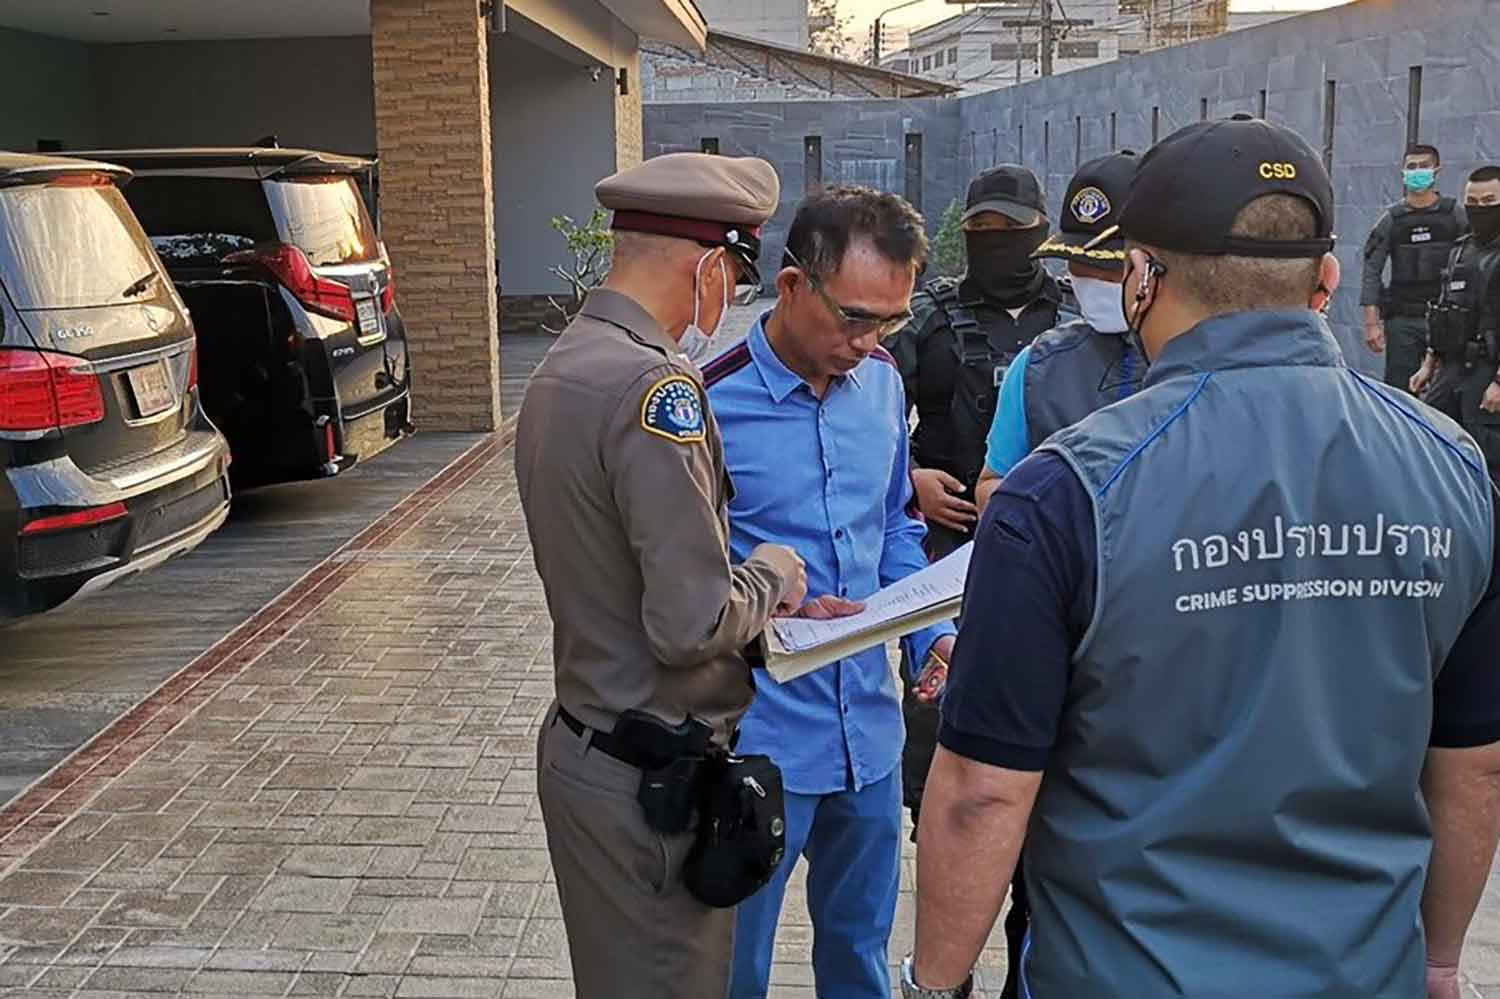 Police arrest Somchai Jutikitdet, centre, at his house in Rayong province on Thursday morning. (Police photo)